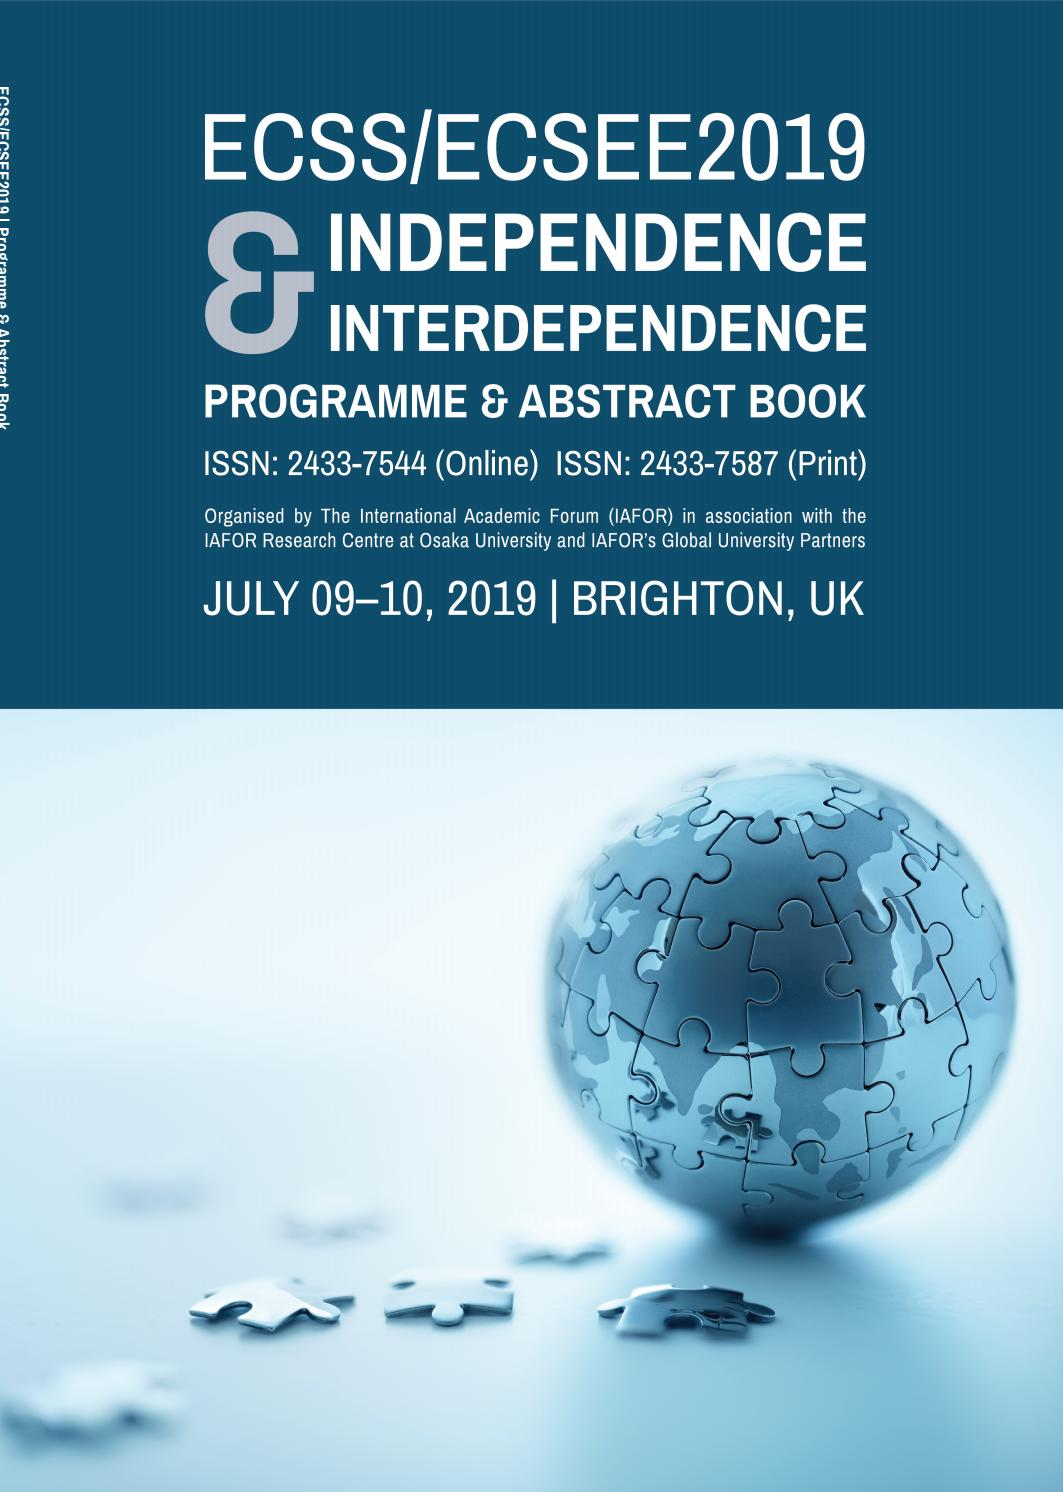 ECSS ECSEE 2019 Conference Programme & Abstract Book by